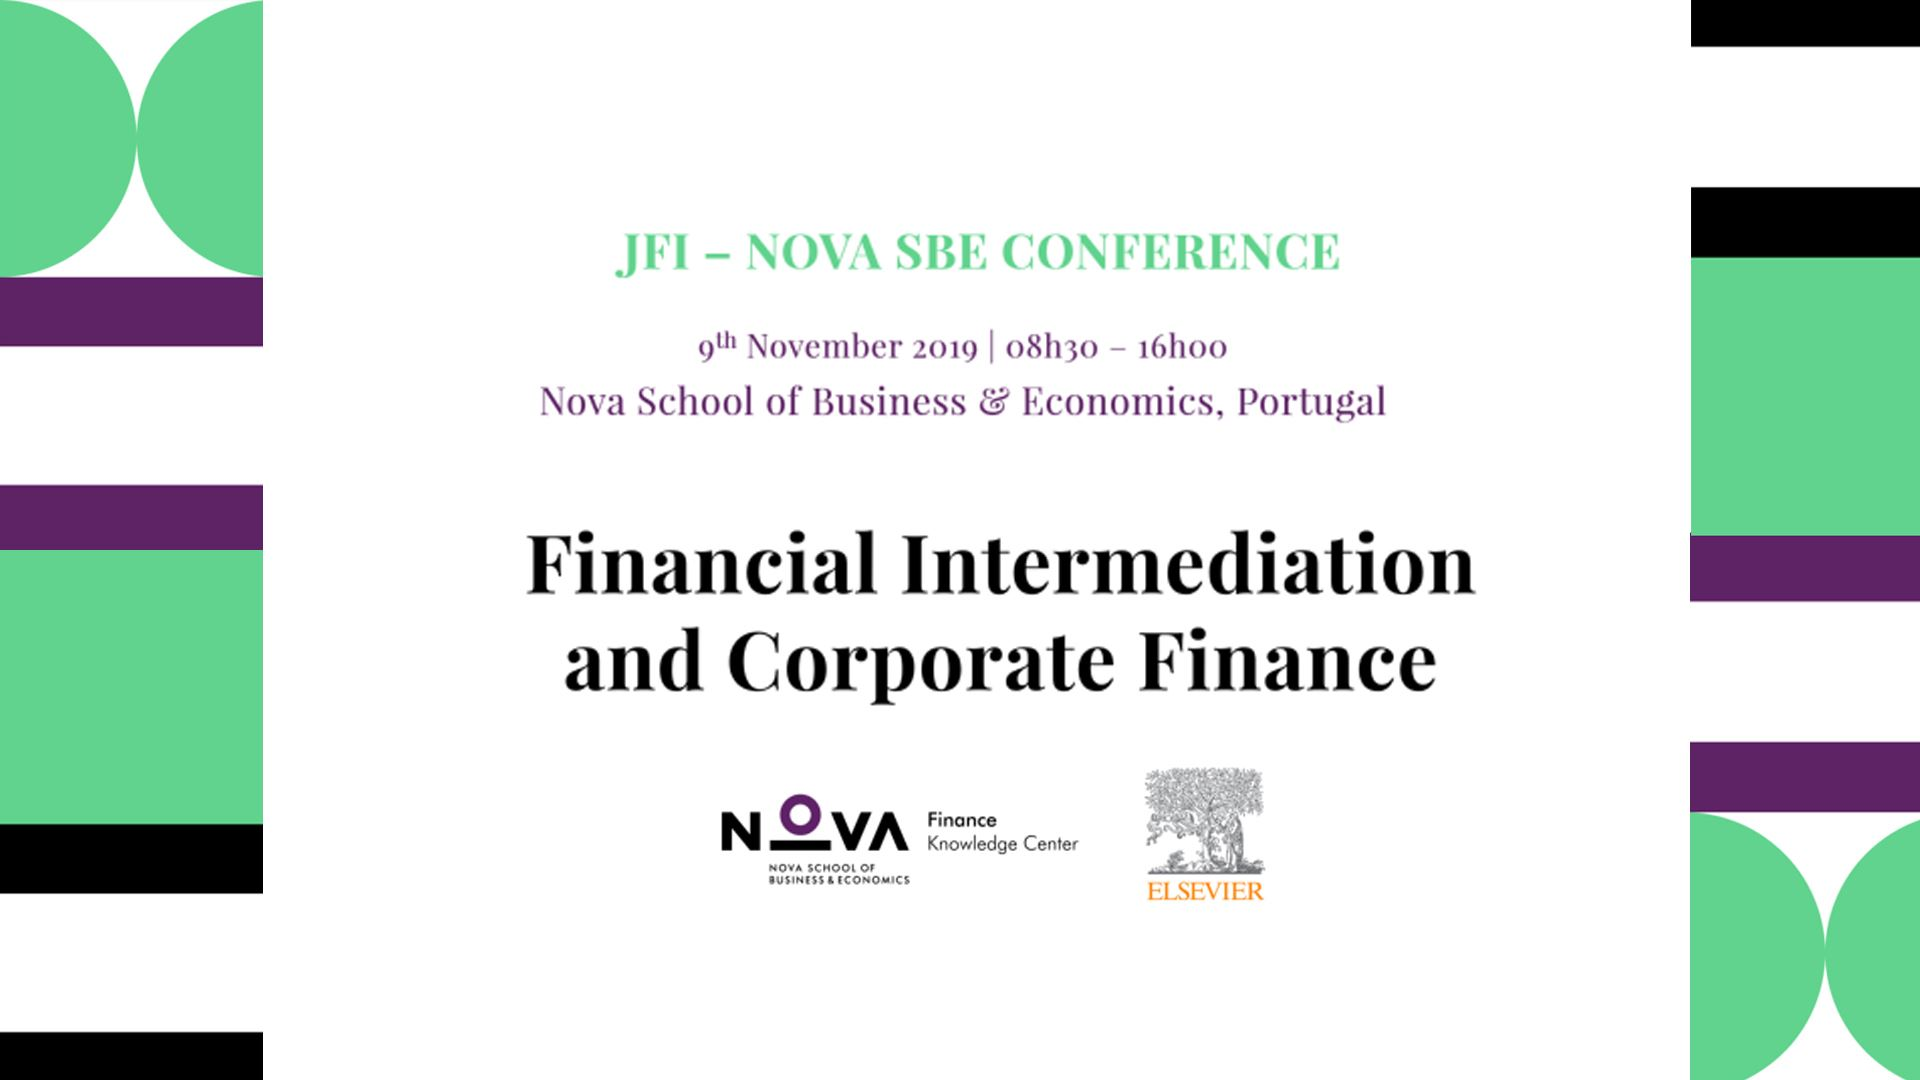 JFI-Nova SBE Conference on Financial Intermediation and Corporate Finance